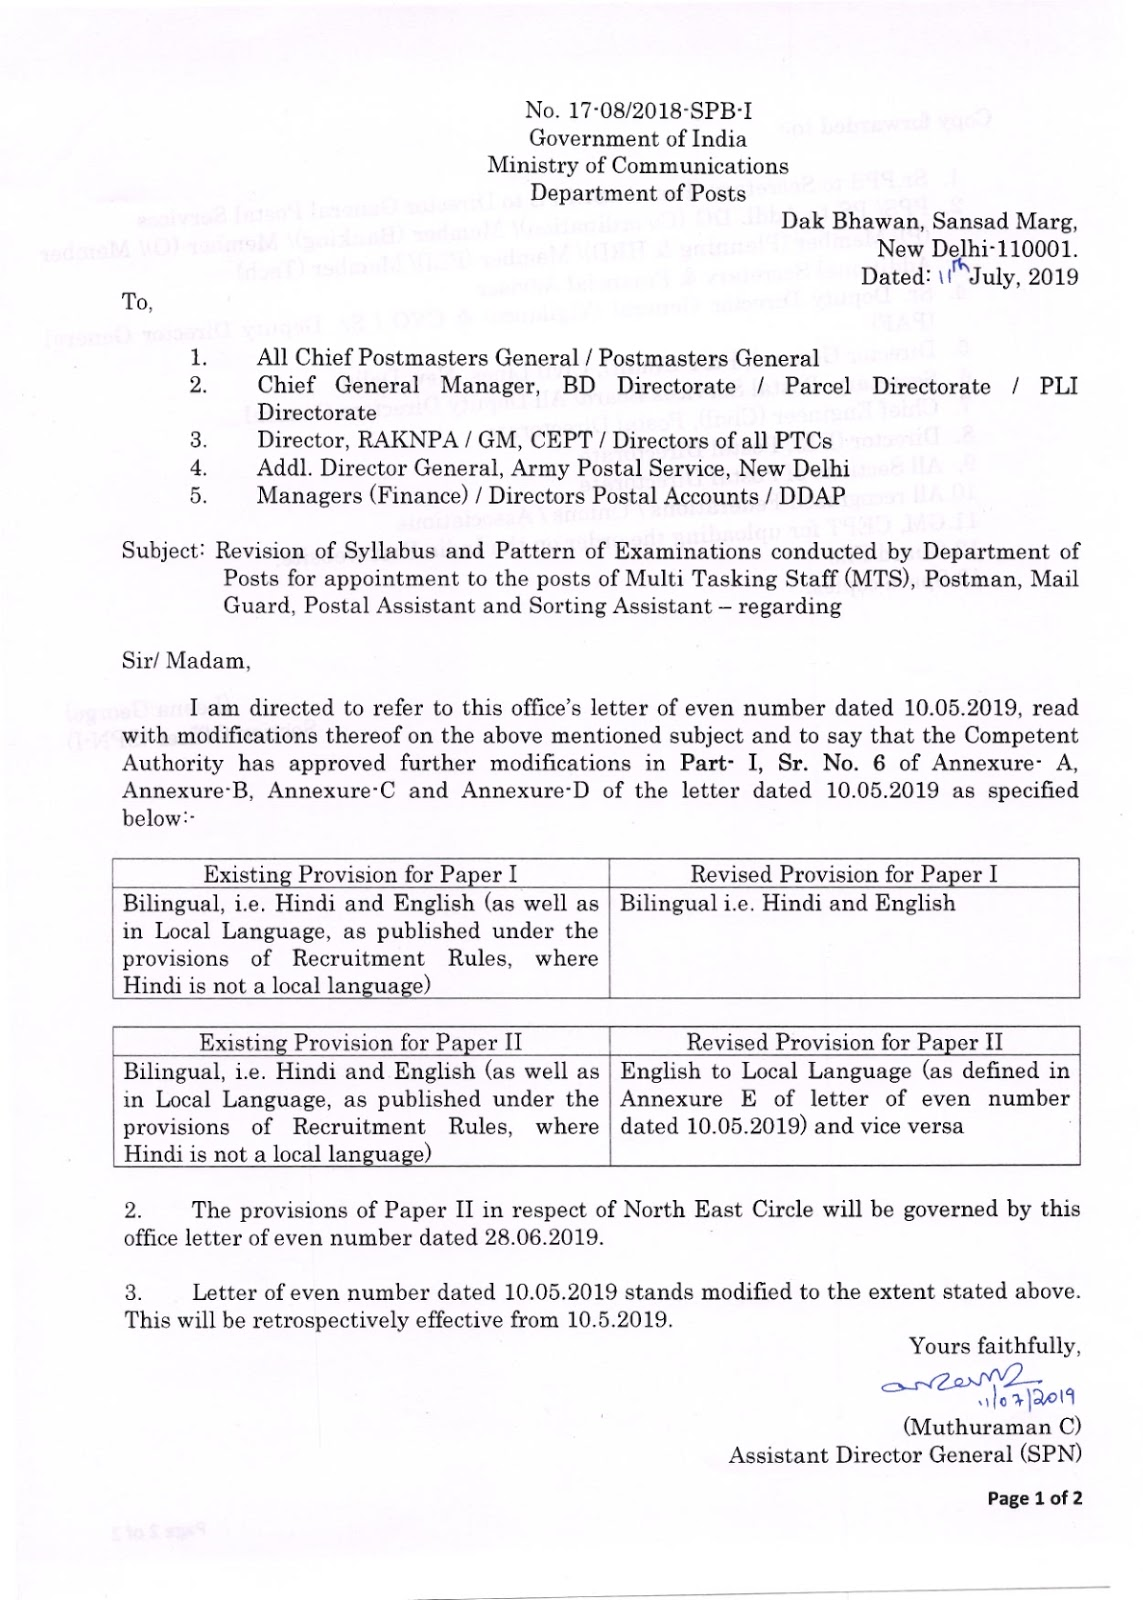 Revision of Syllabus and Pattern of Examinations conducted by Department of Posts